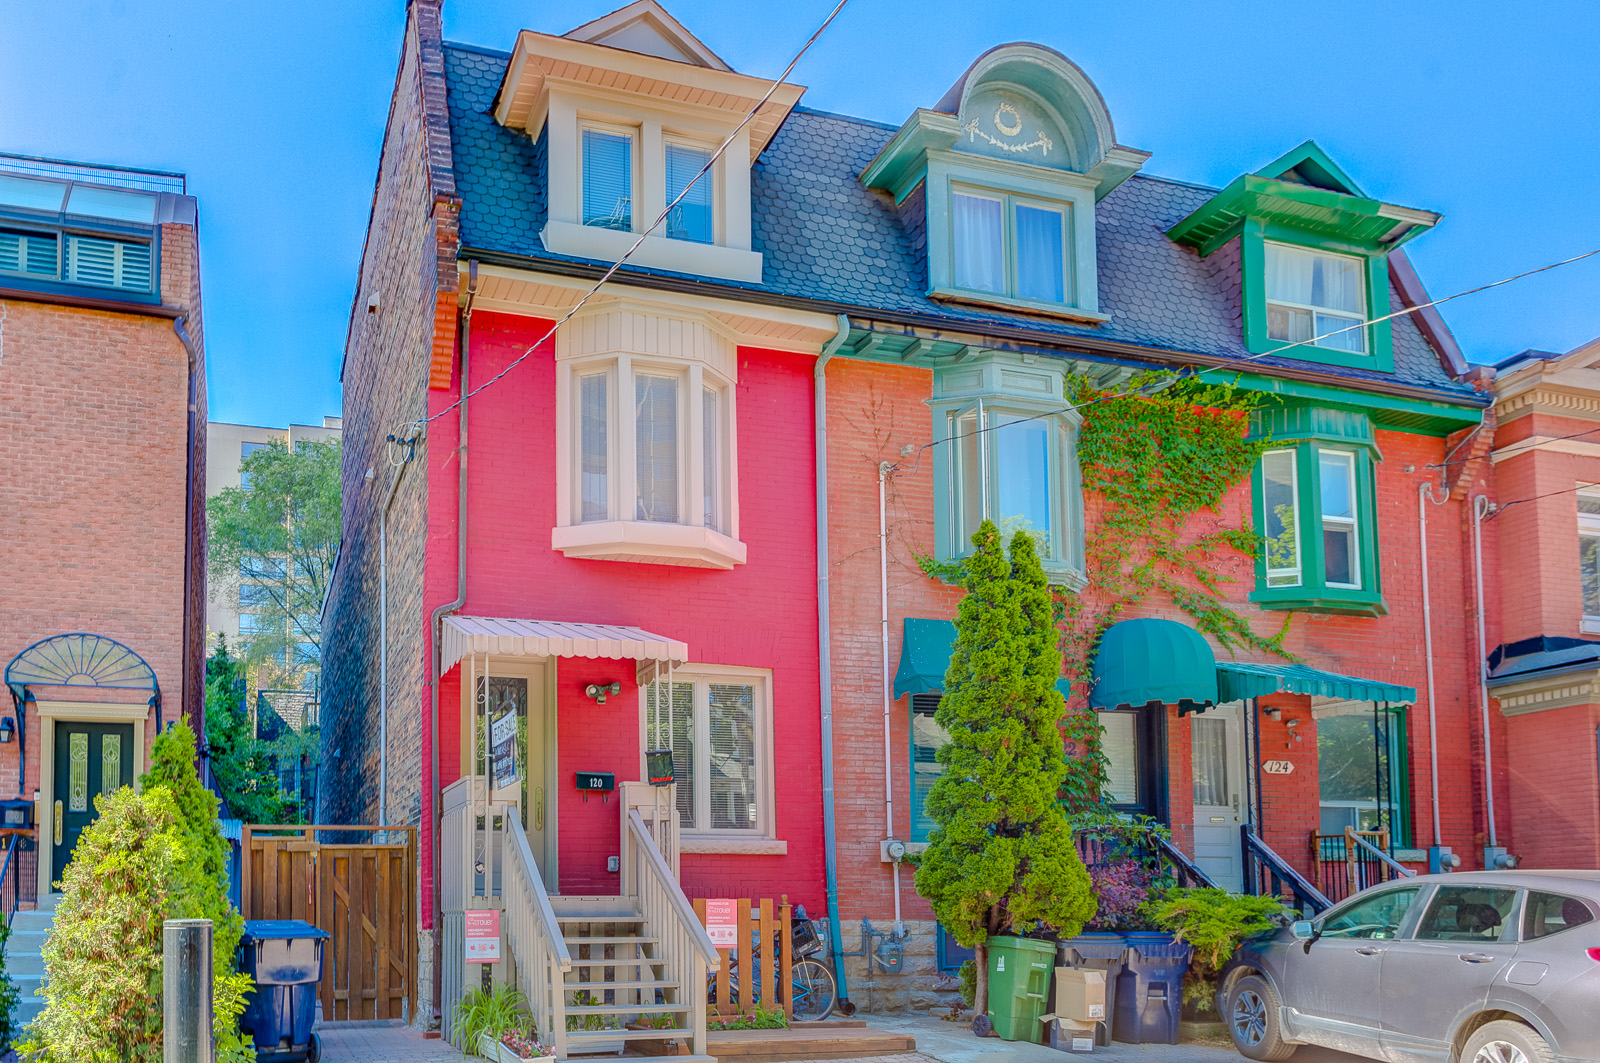 Row of colourful 3-storey Victorian houses in Toronto.